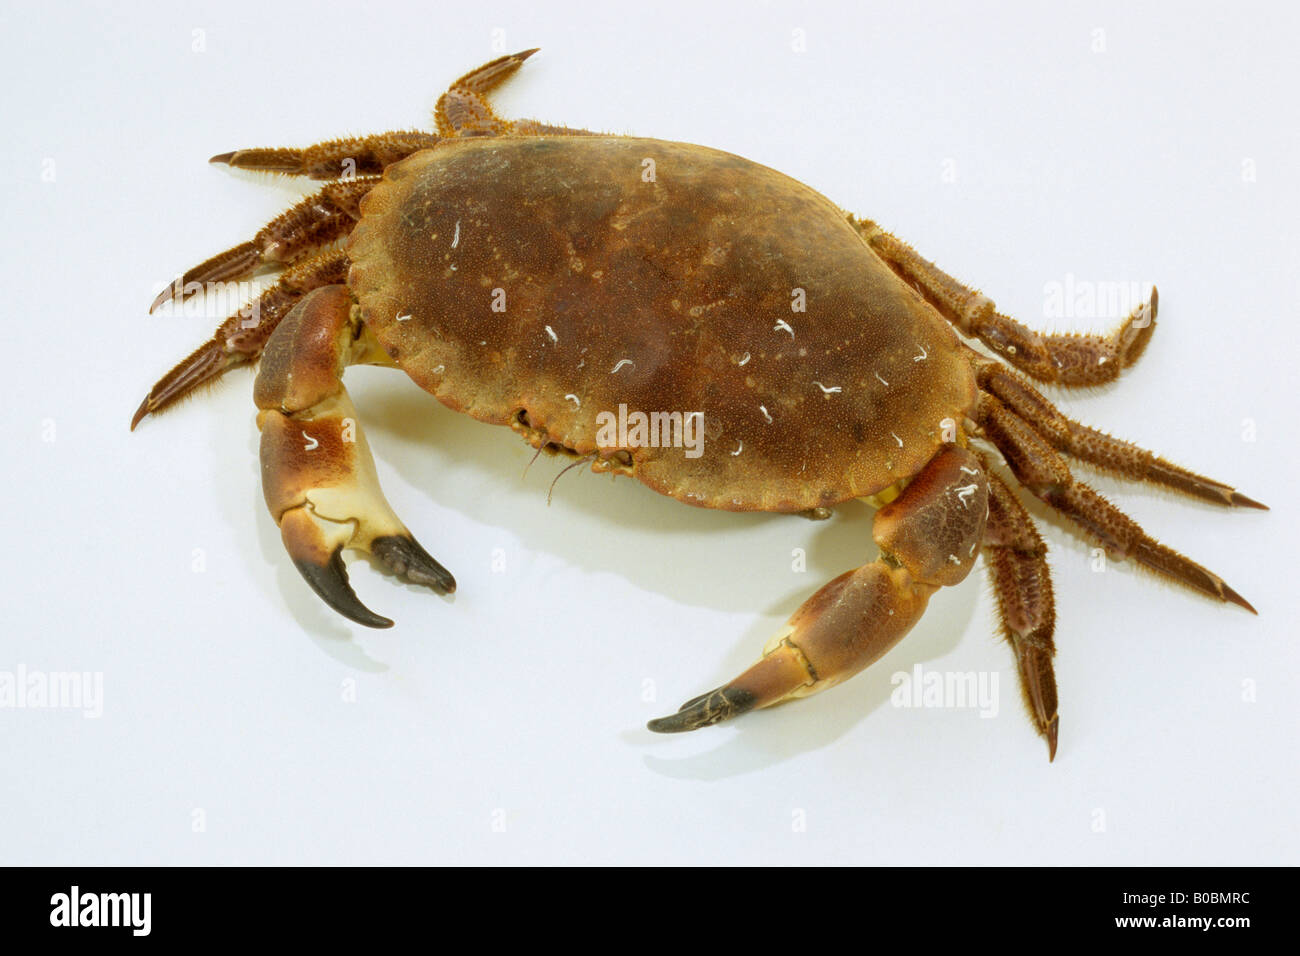 Edible Crab, Cromer Crab (Cancer pagurus), studio picture - Stock Image